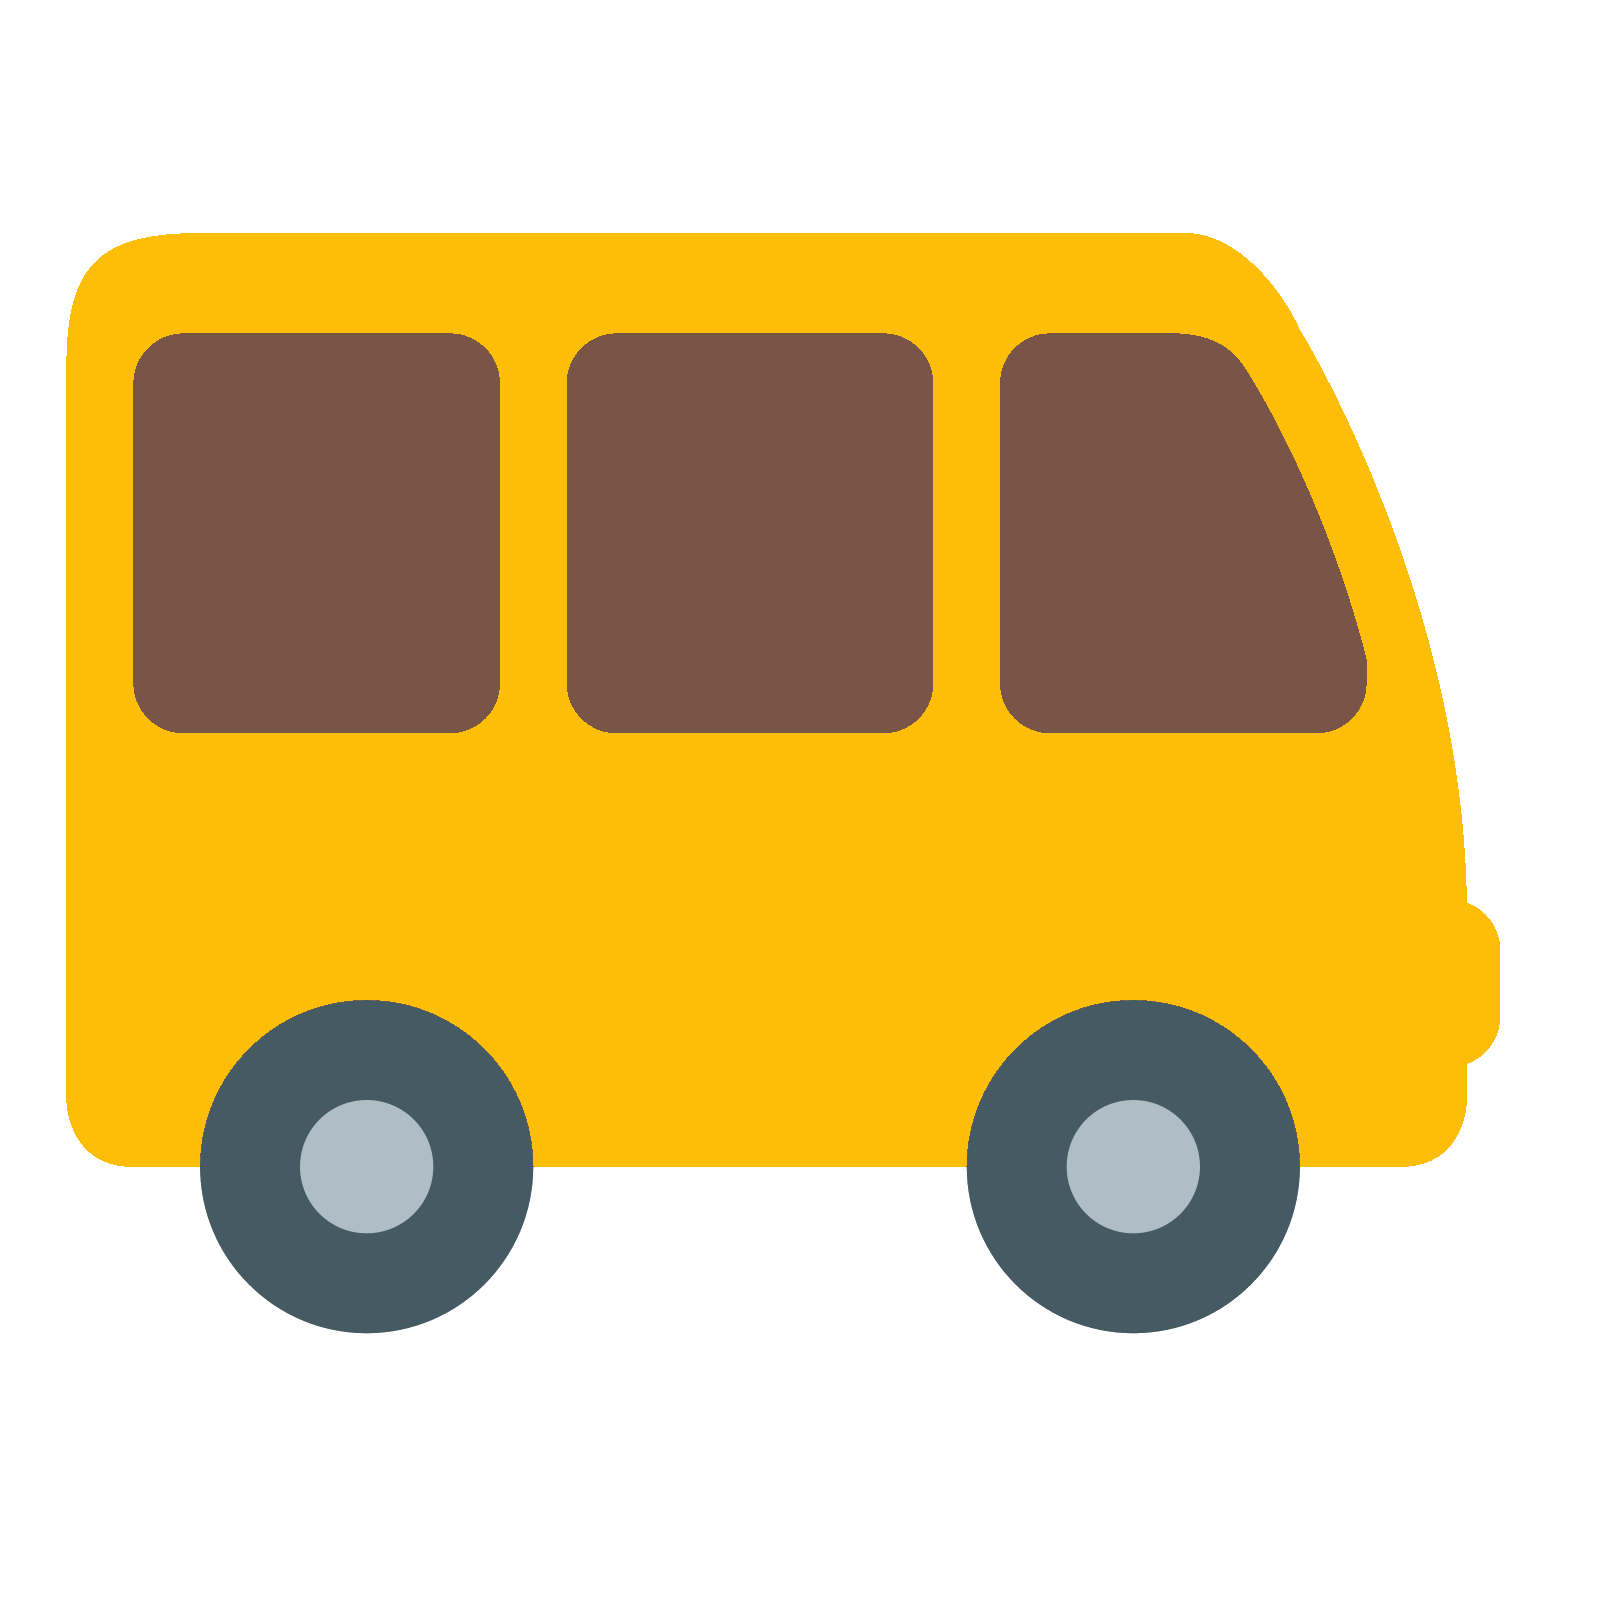 Clipart bus airport bus. Computer icons symbol transport